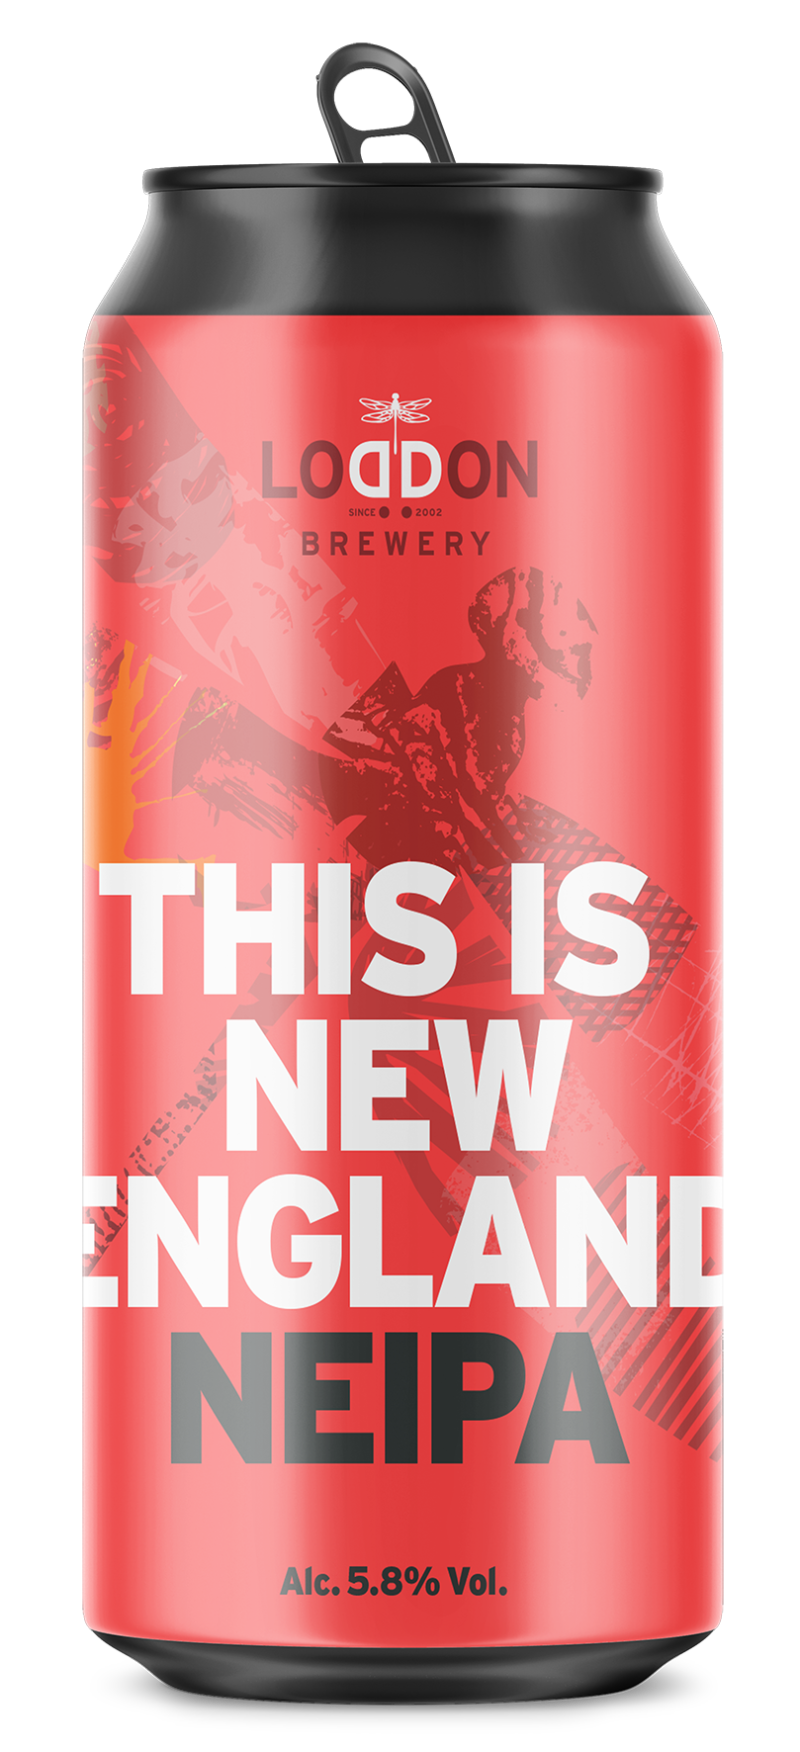 This is New England NEIPA can